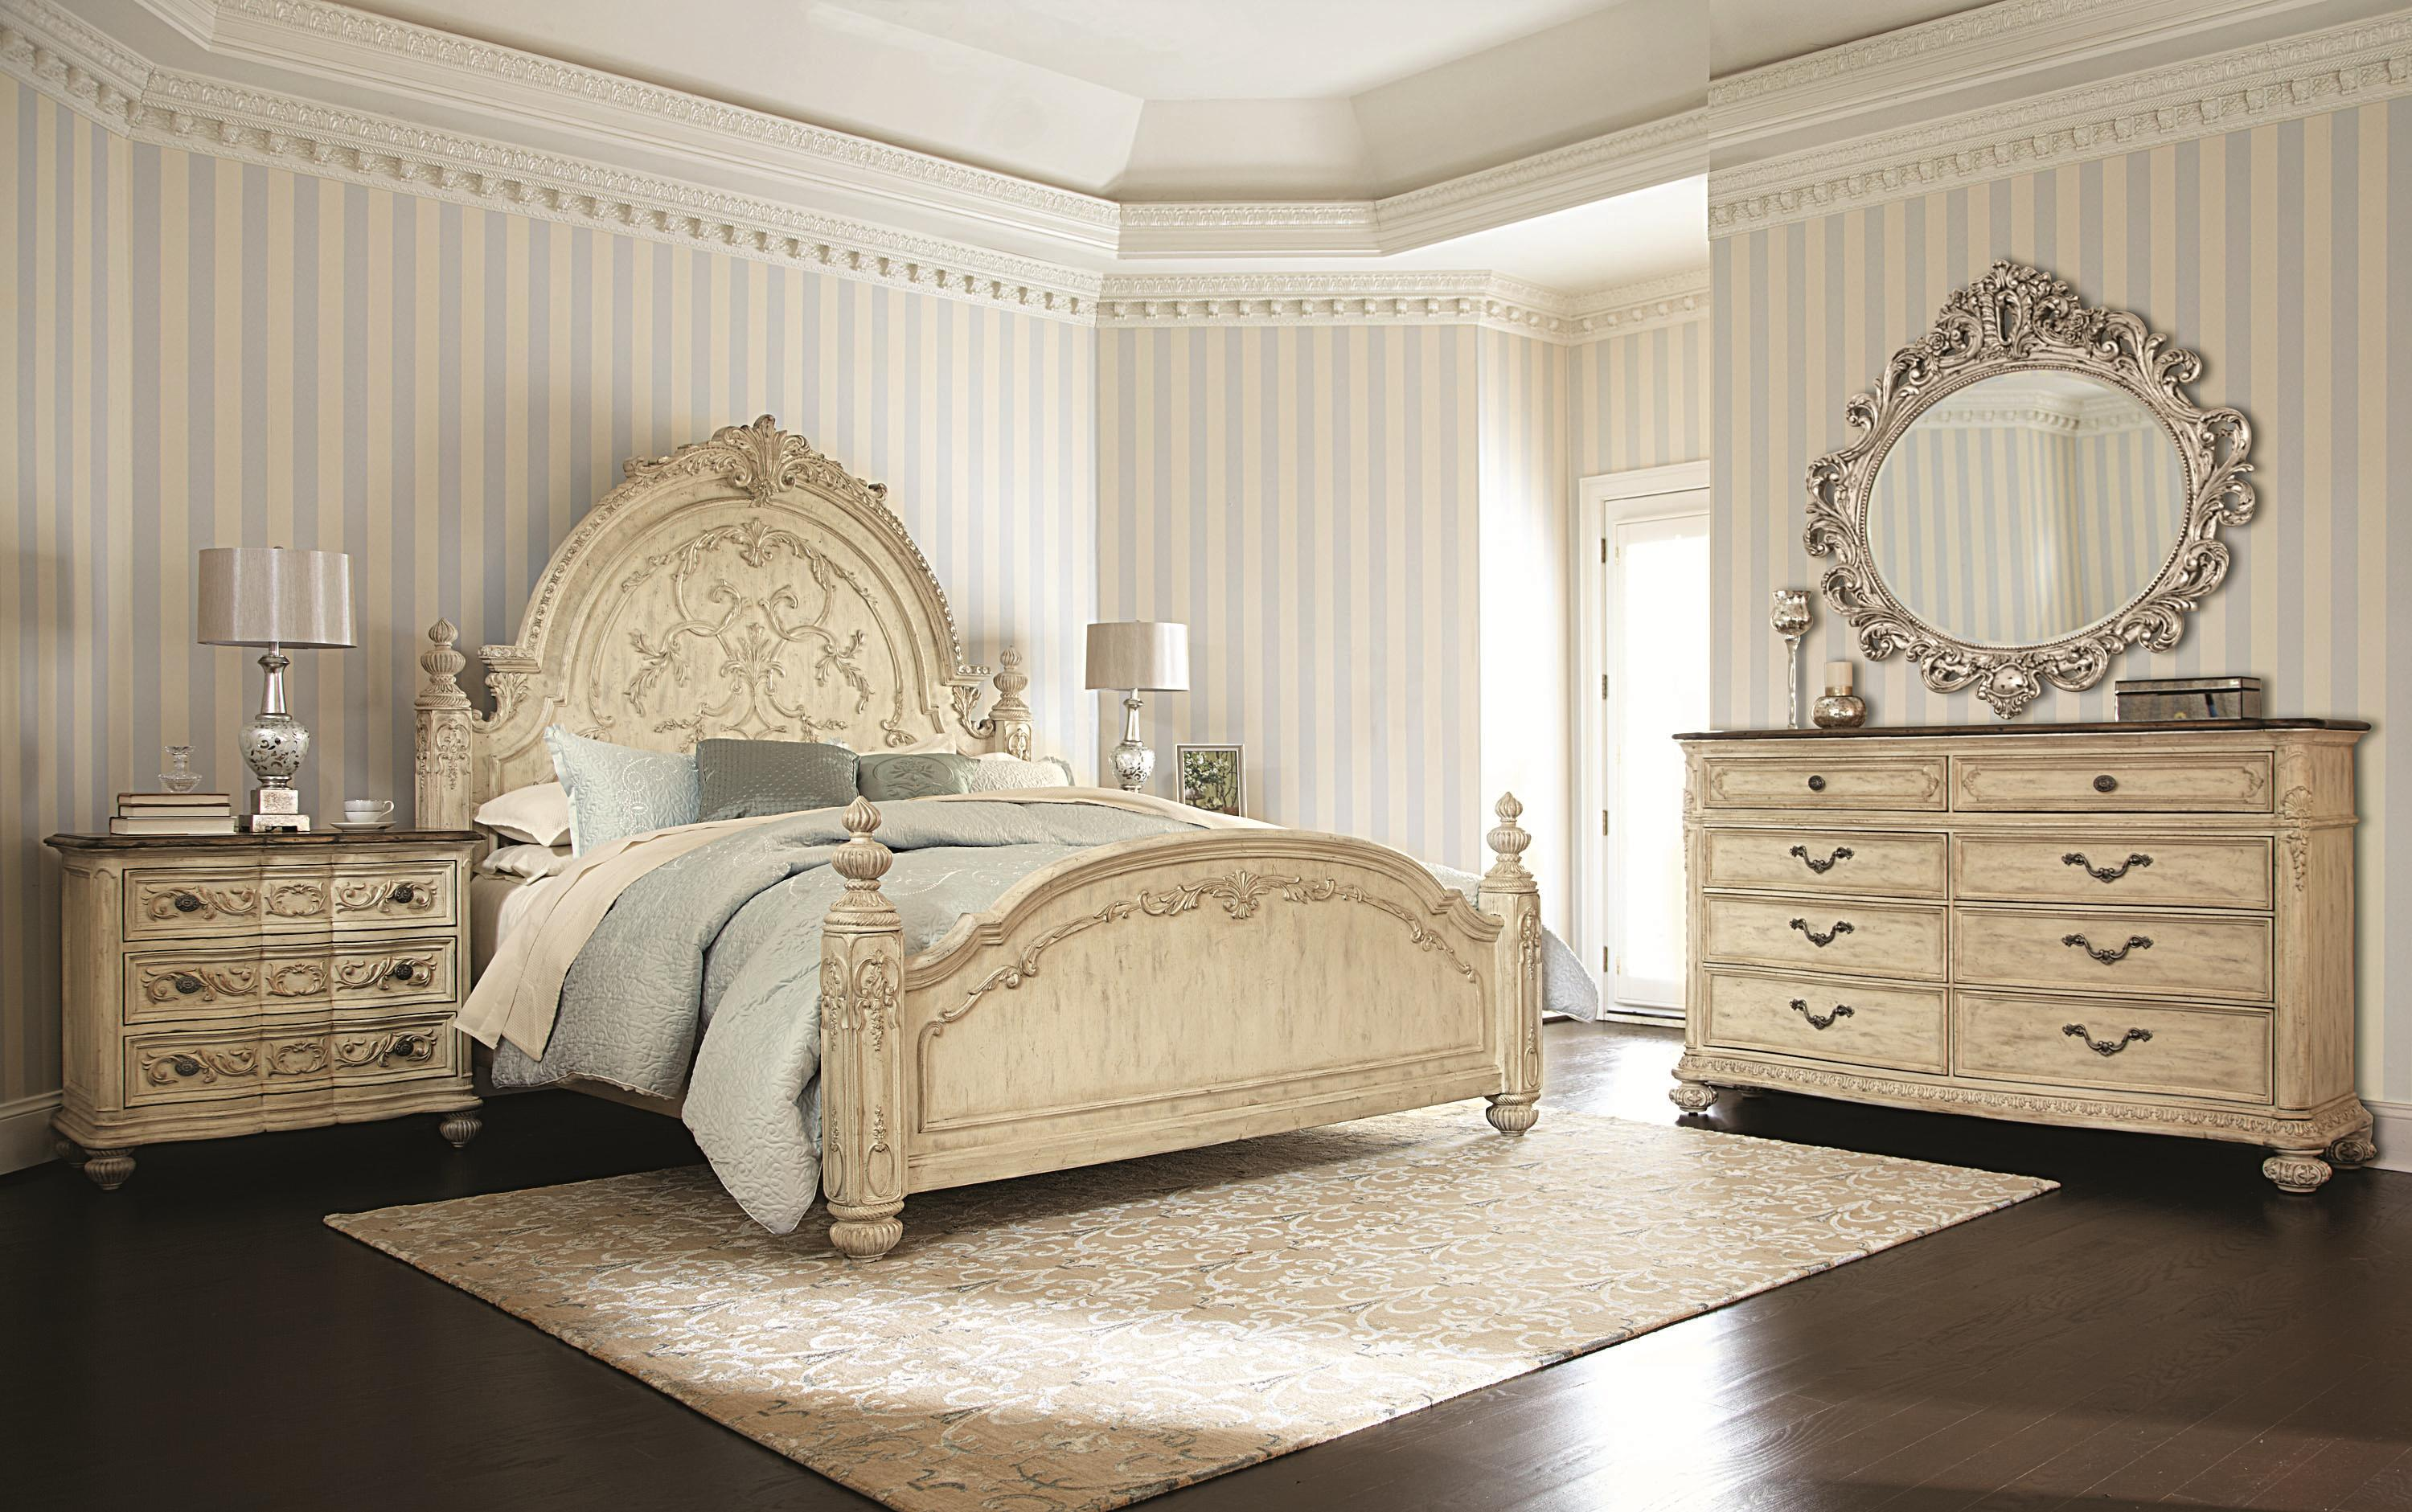 American Drew Jessica McClintock Home - The Boutique Collection Queen Bedroom Group - Item Number: 217W Queen Bedroom Group 2